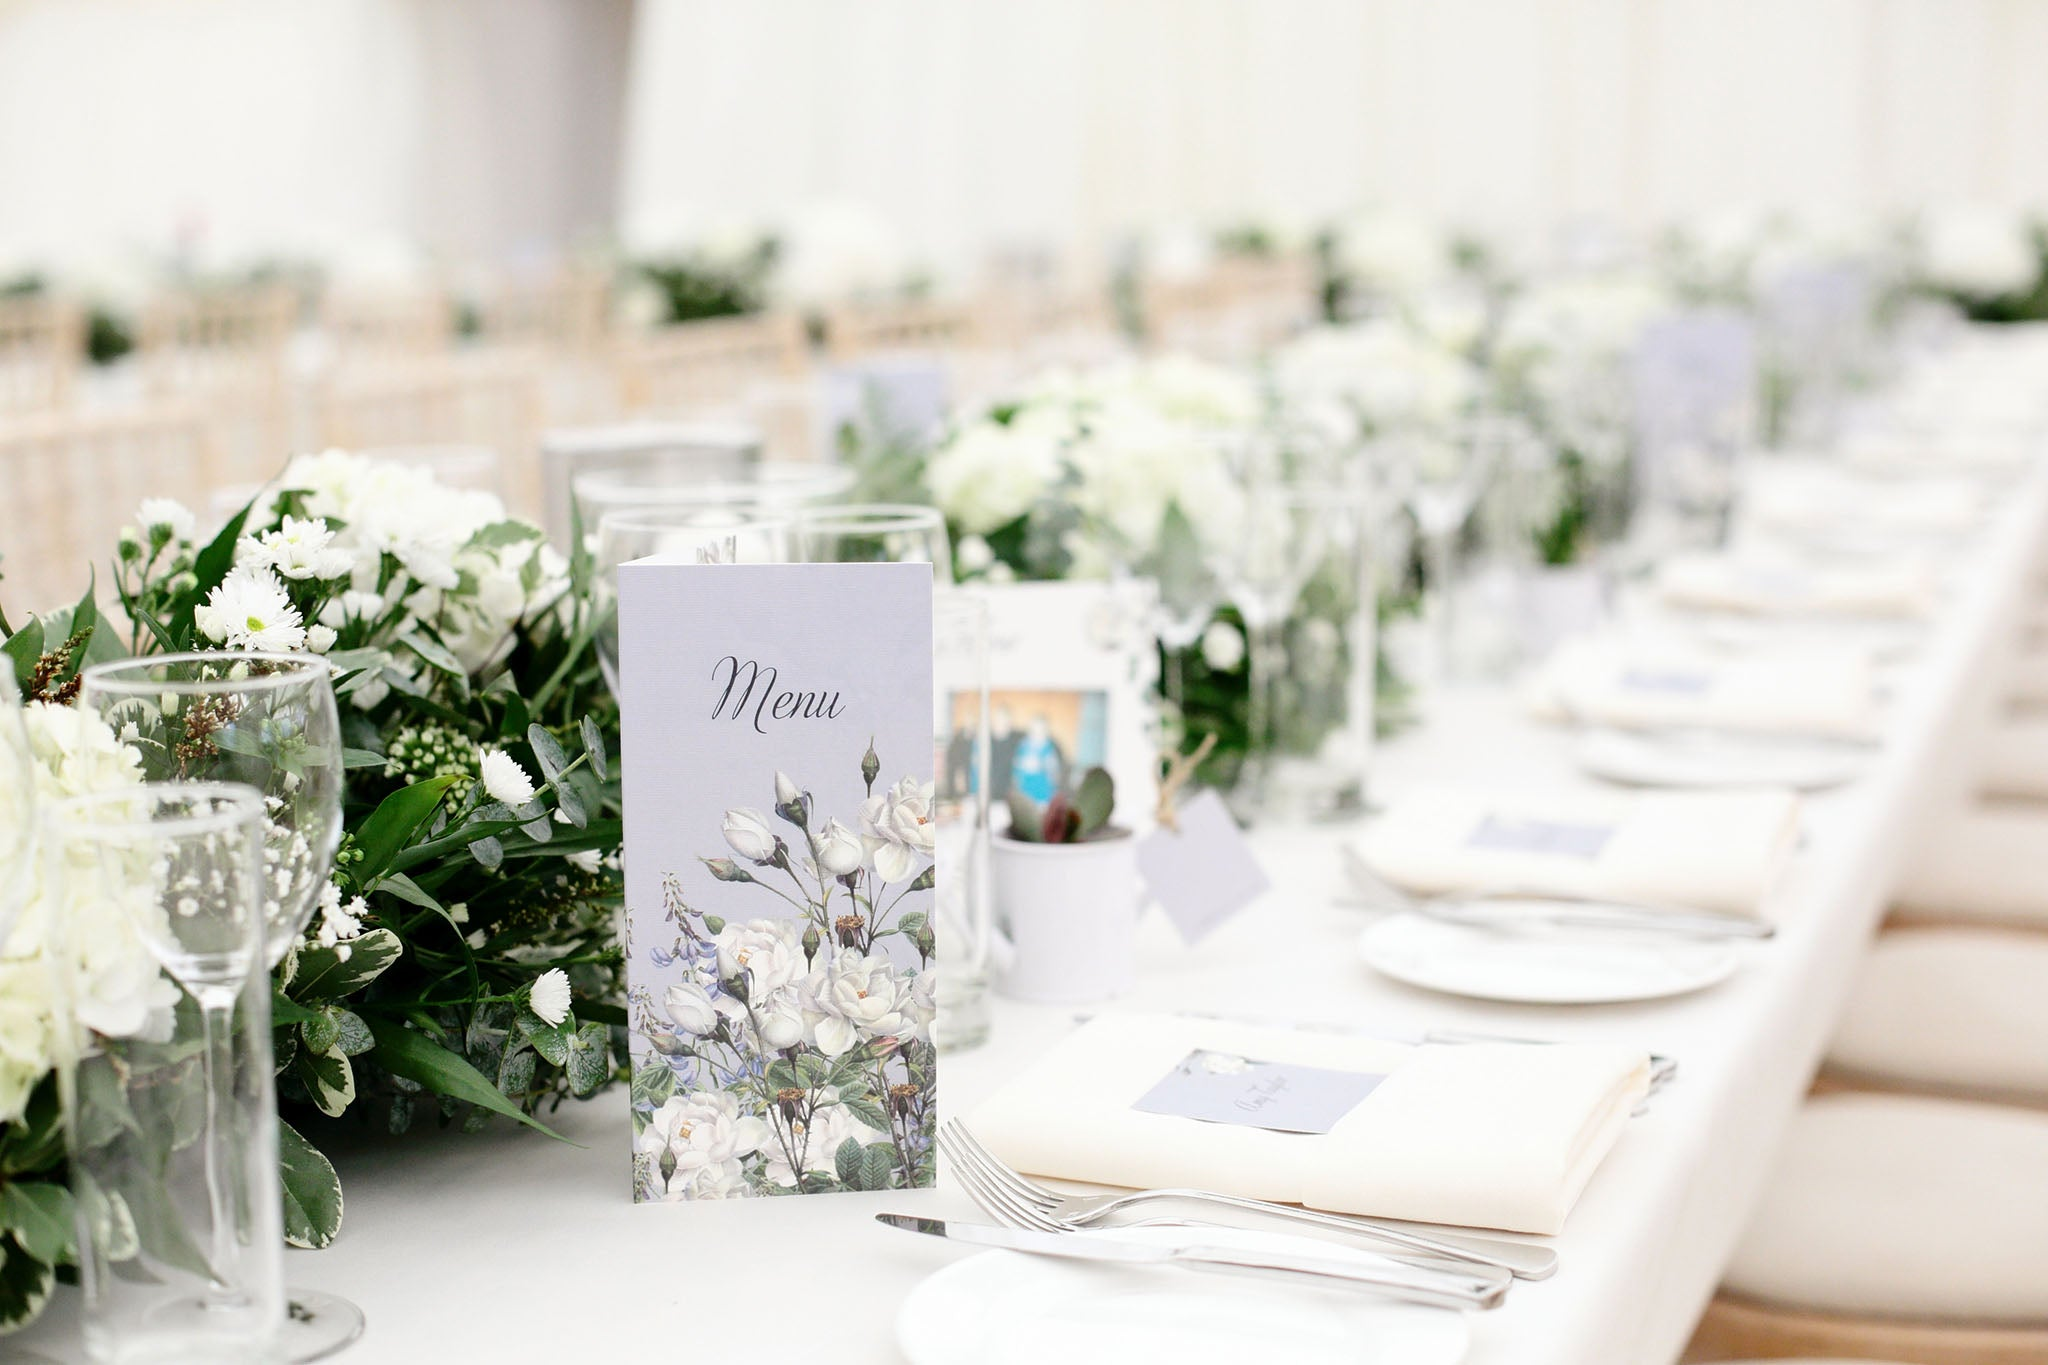 Wedding stationery styling